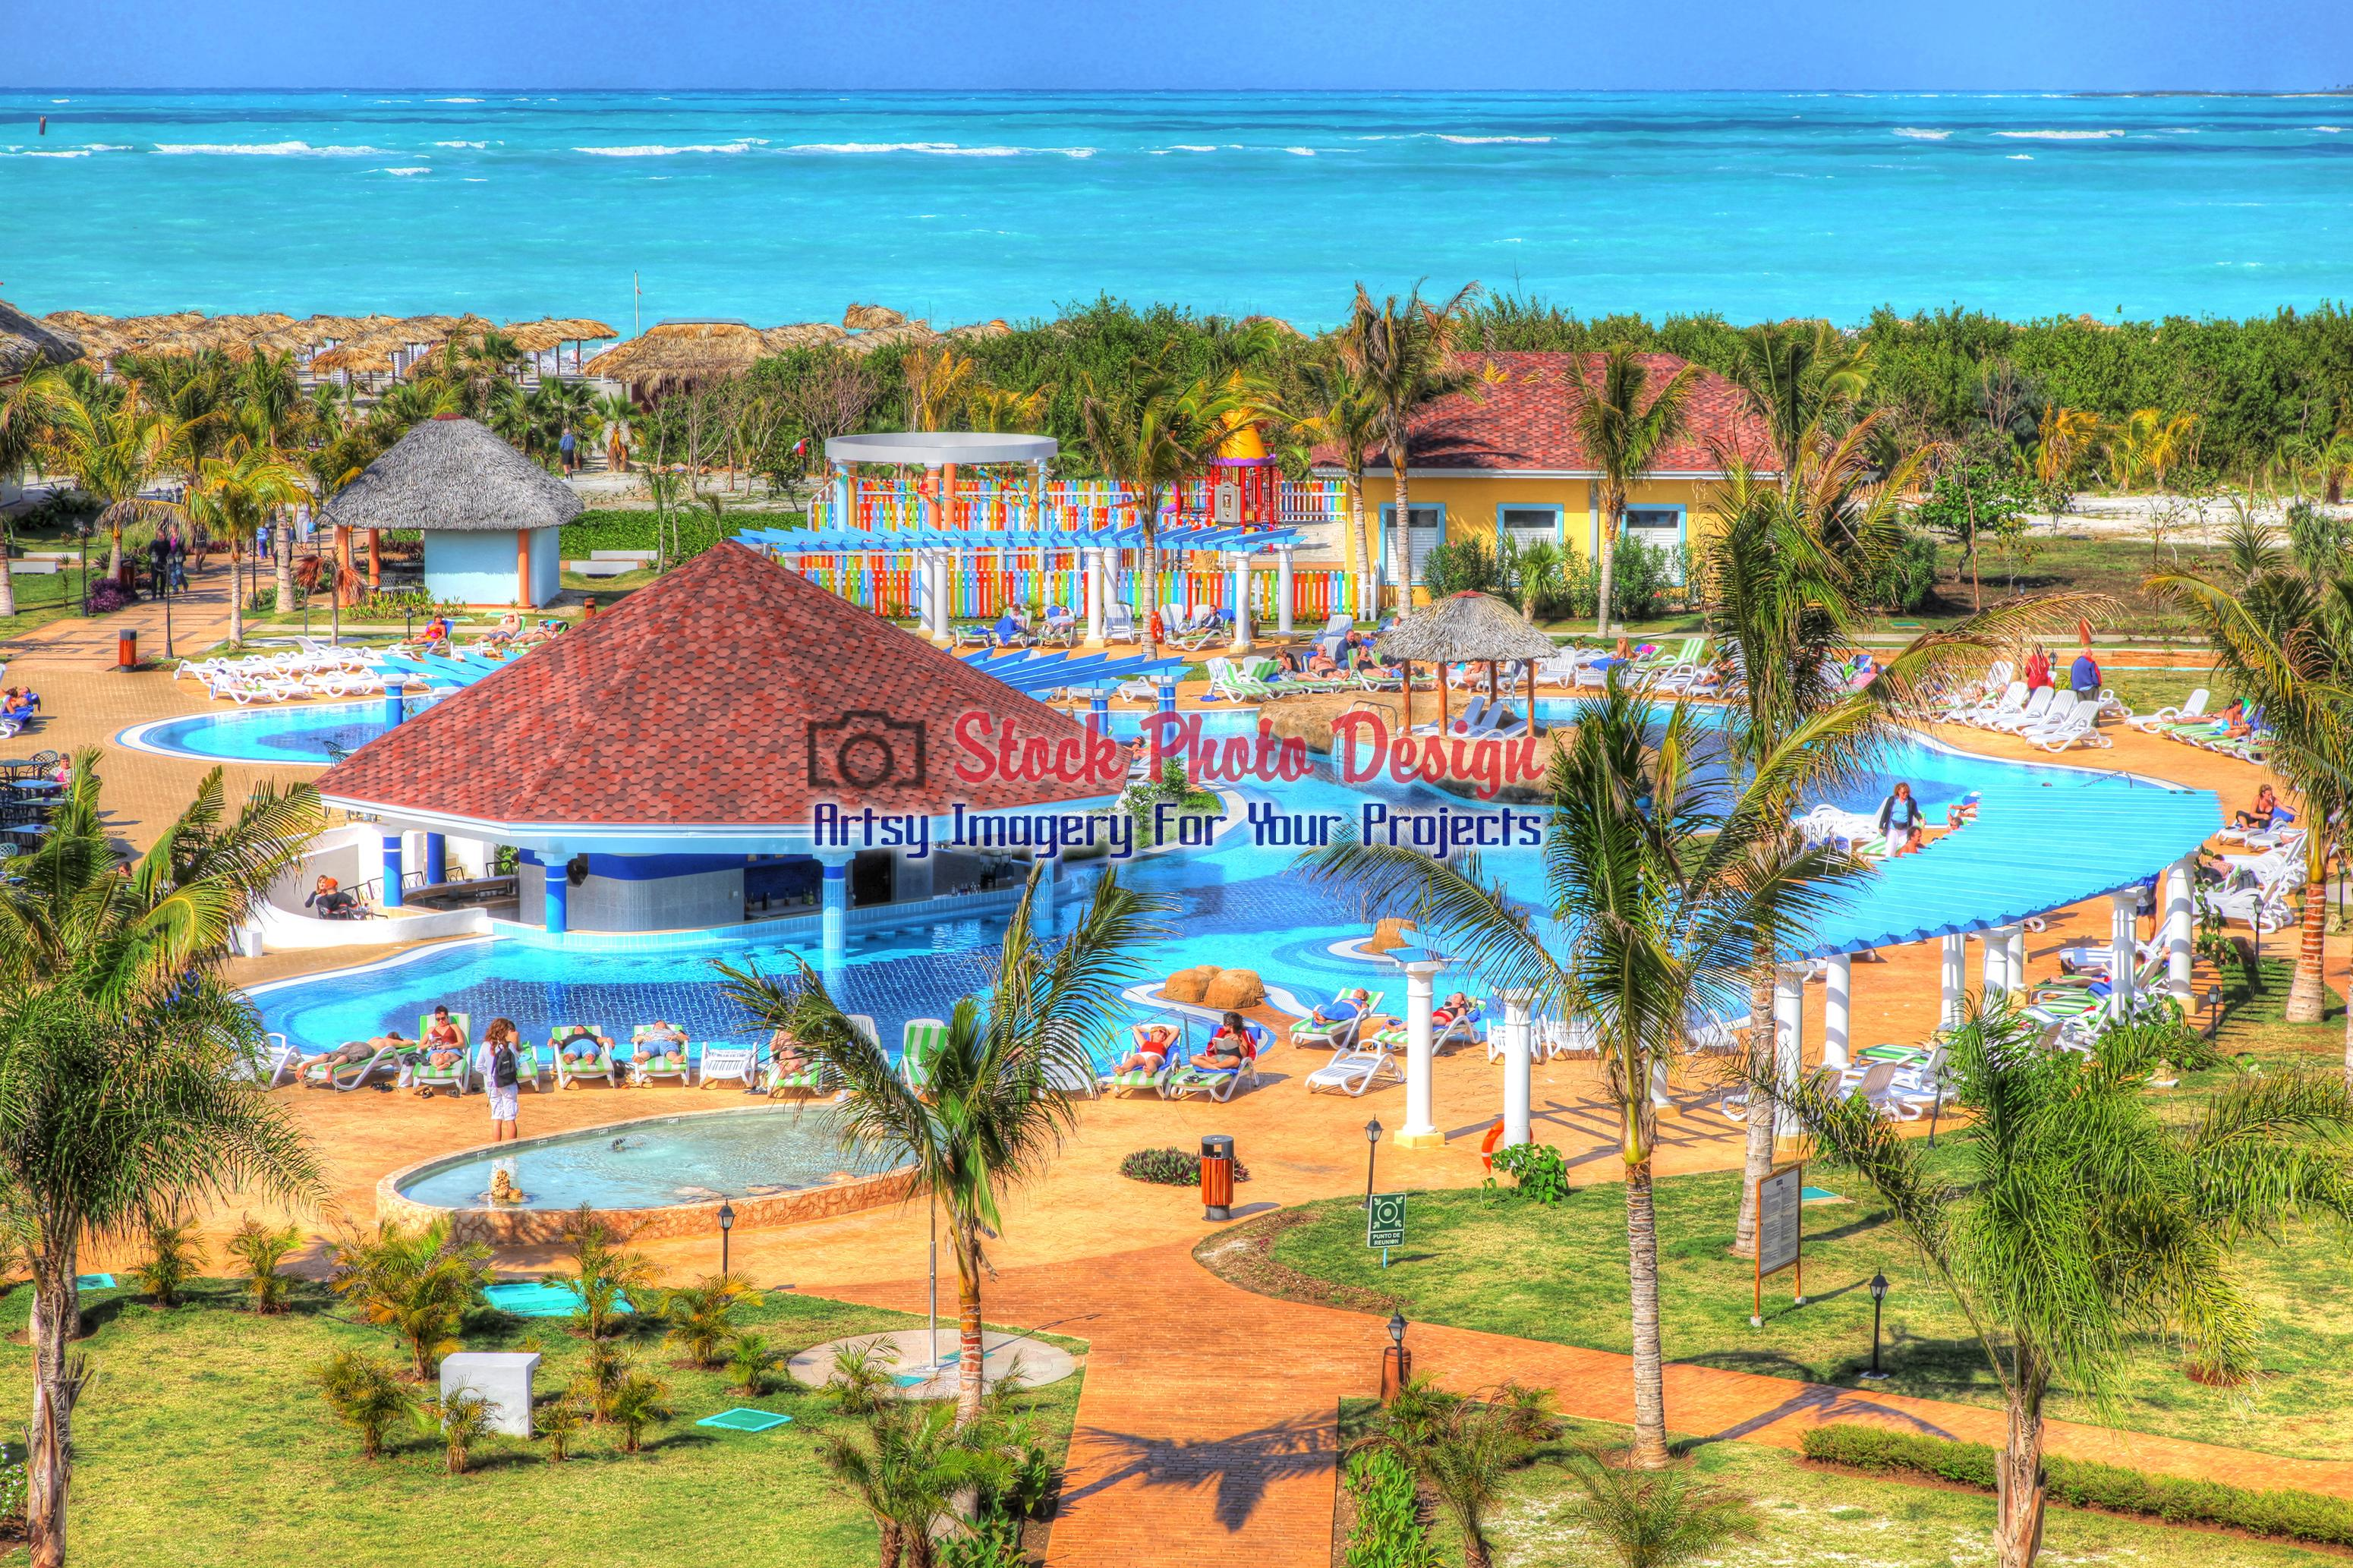 Tropical Resort Pool in HDR - Dimensions: 3100 by 2066 pixels